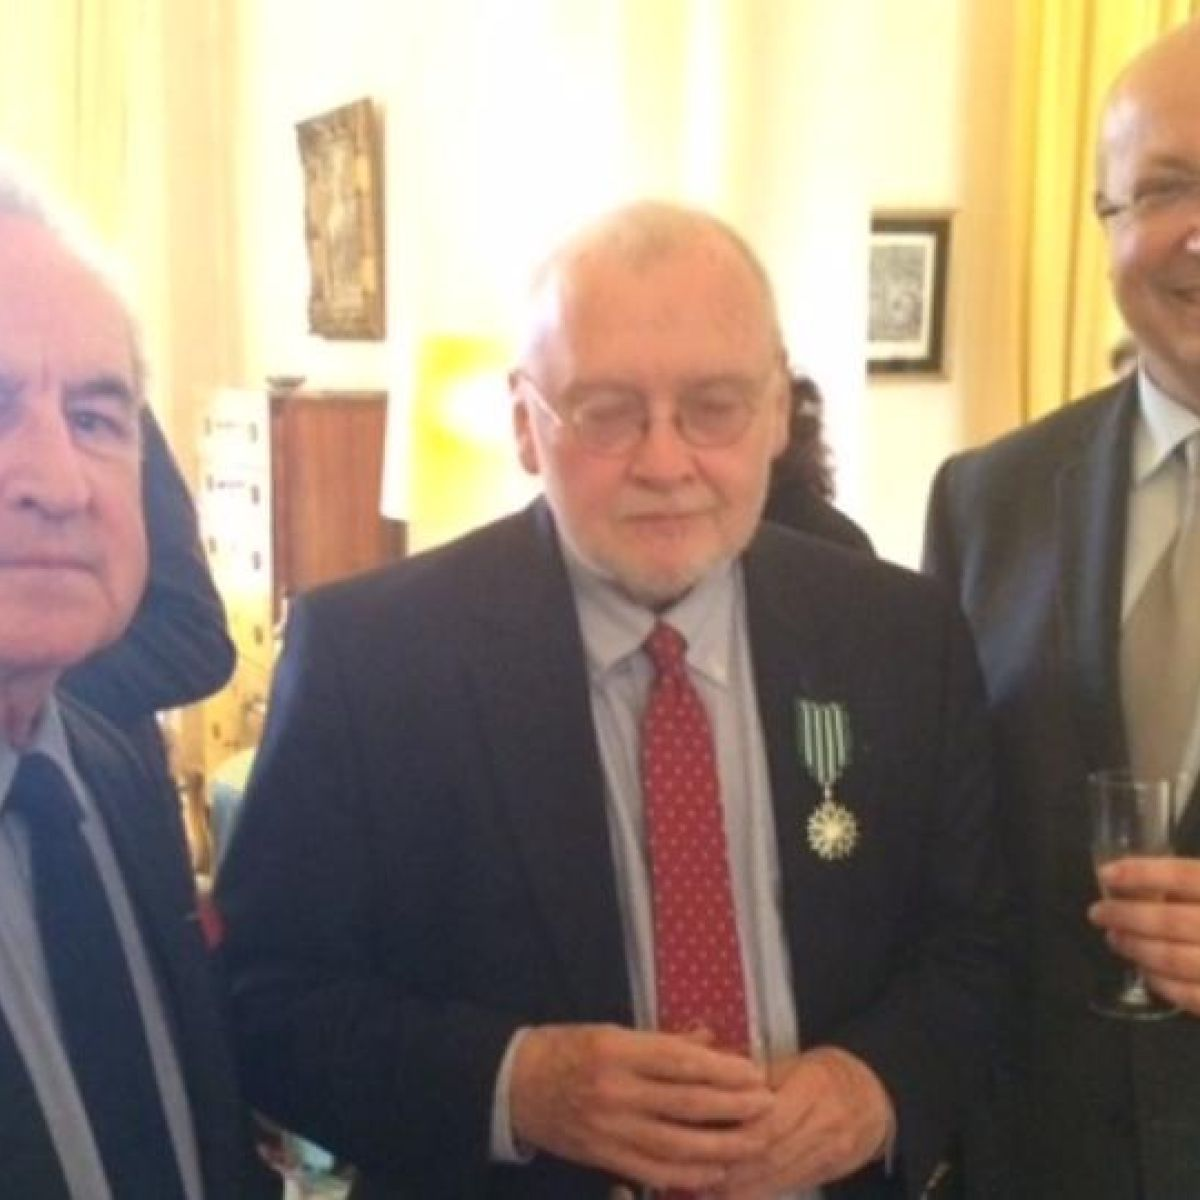 Dalkey Archive Press founder John O'Brien is knighted